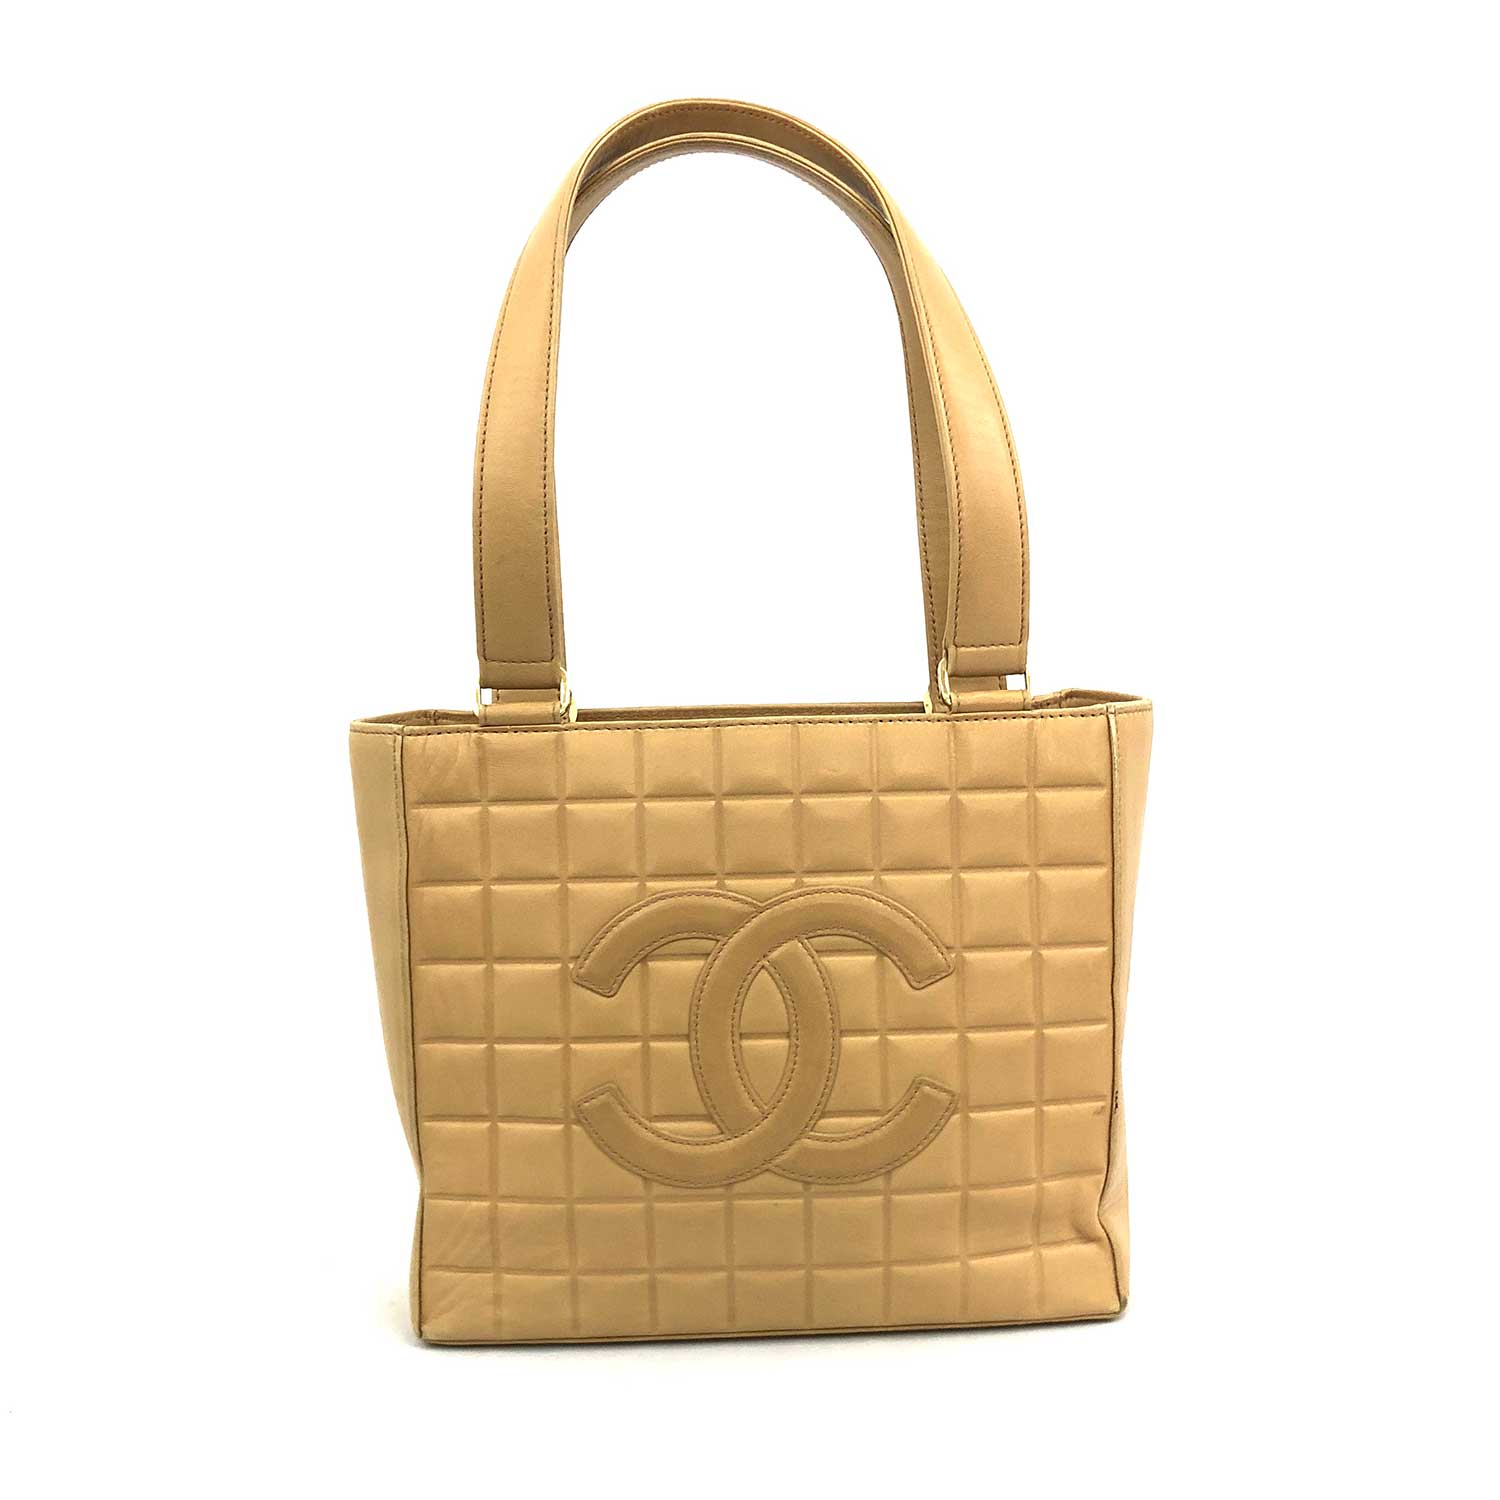 Bolsa Chanel Chocolate Bar Small Tote Beige